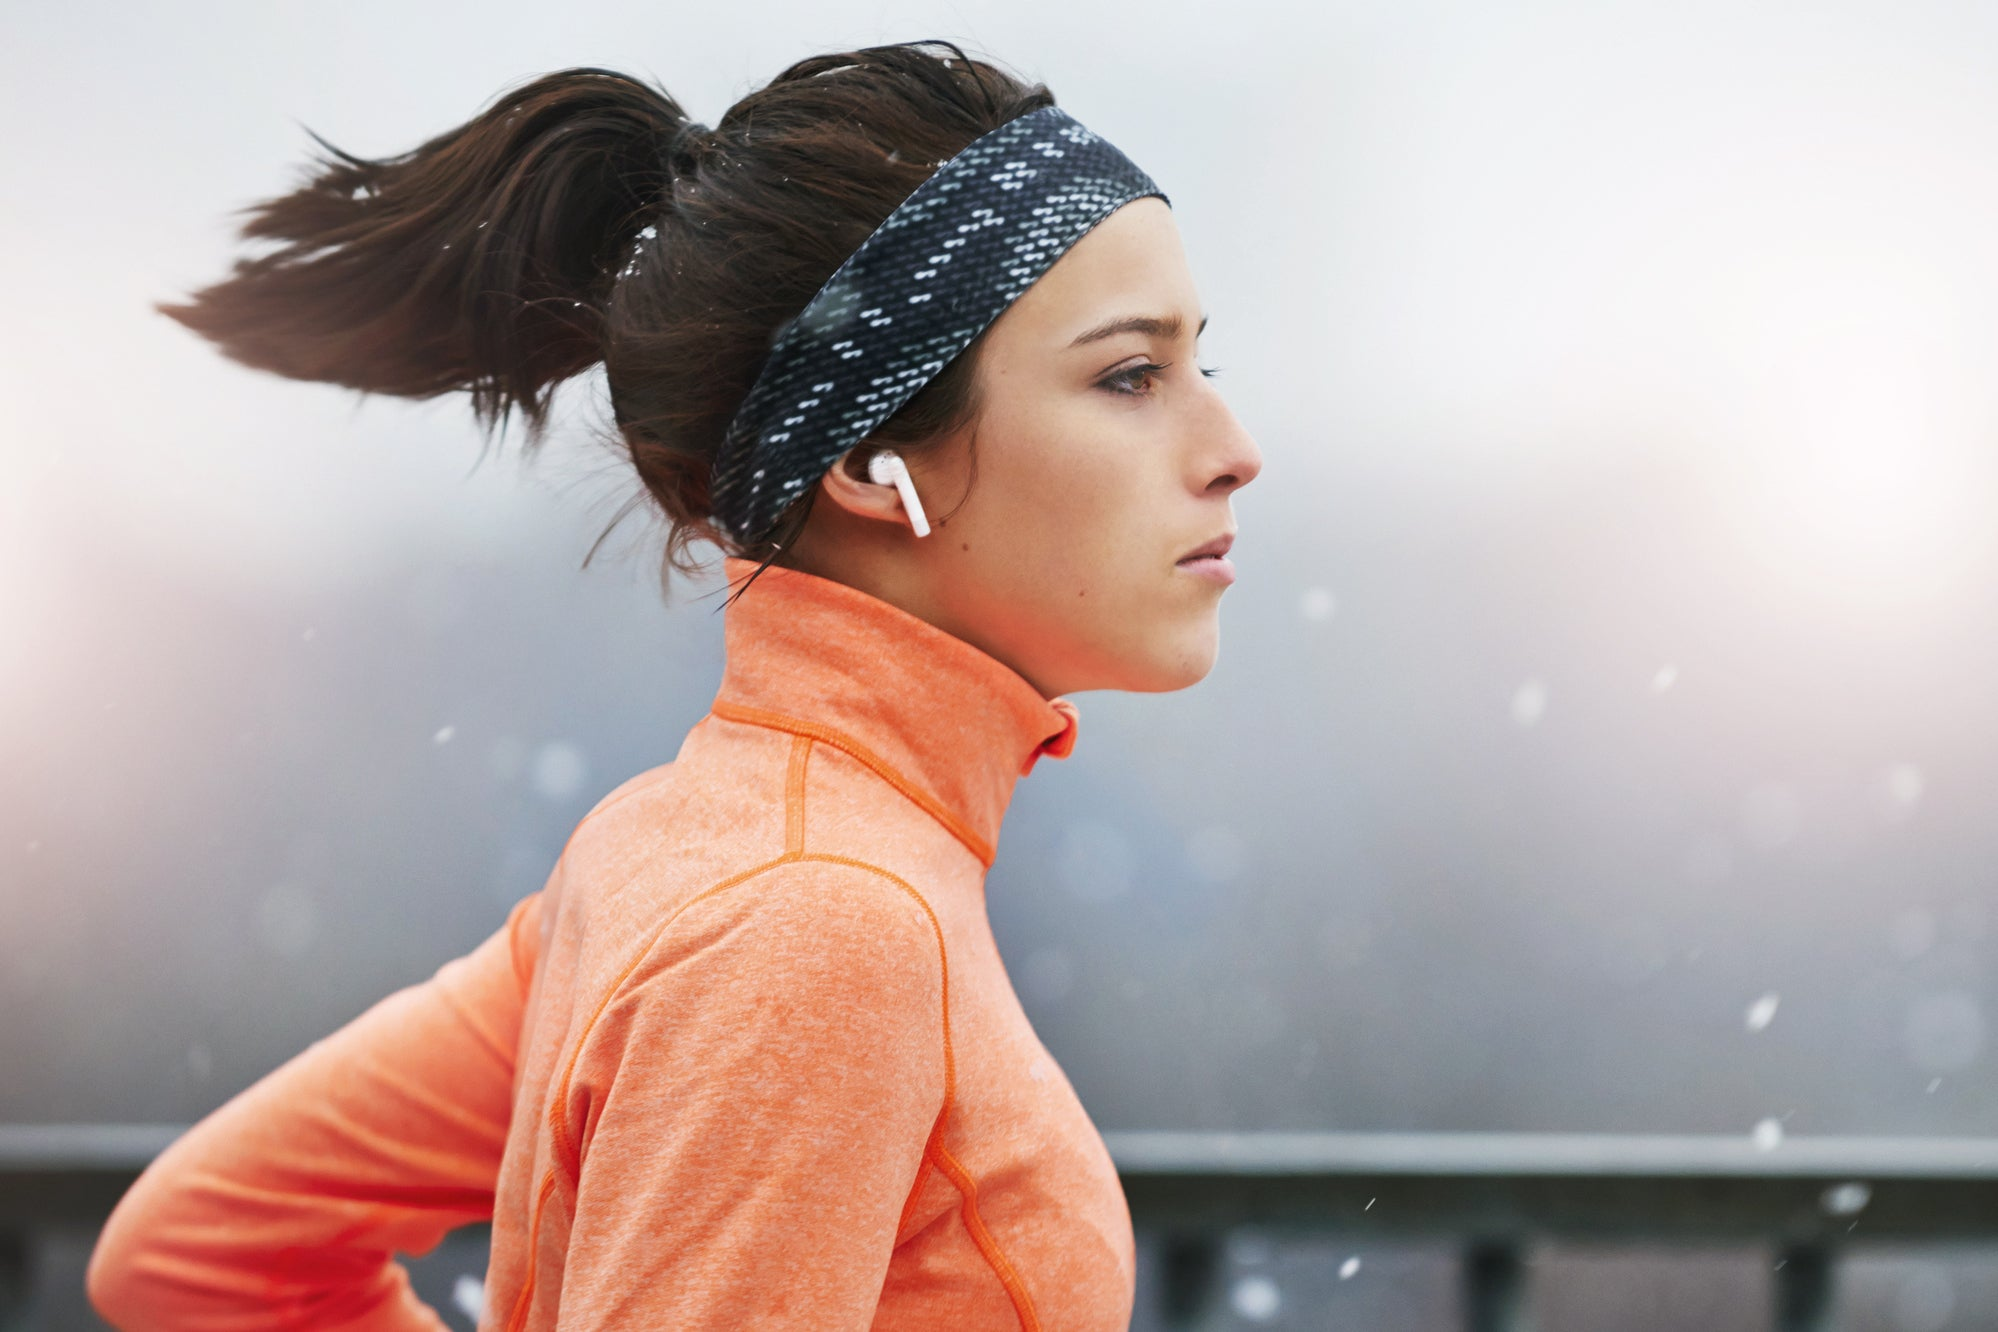 10 Best Headphones For Running The Independent